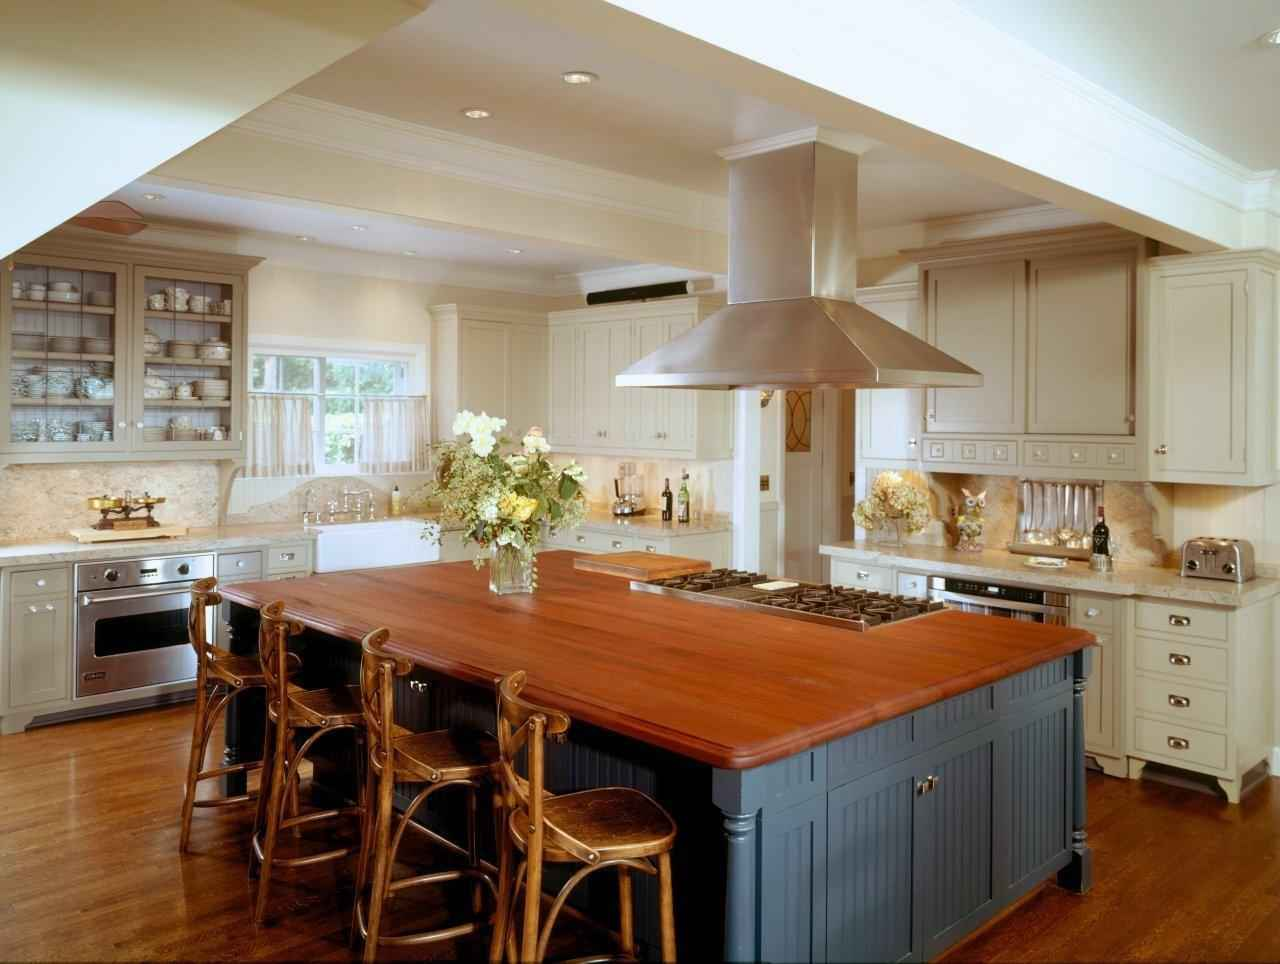 Cheap countertop ideas for your kitchen for Cheap kitchen remodeling ideas